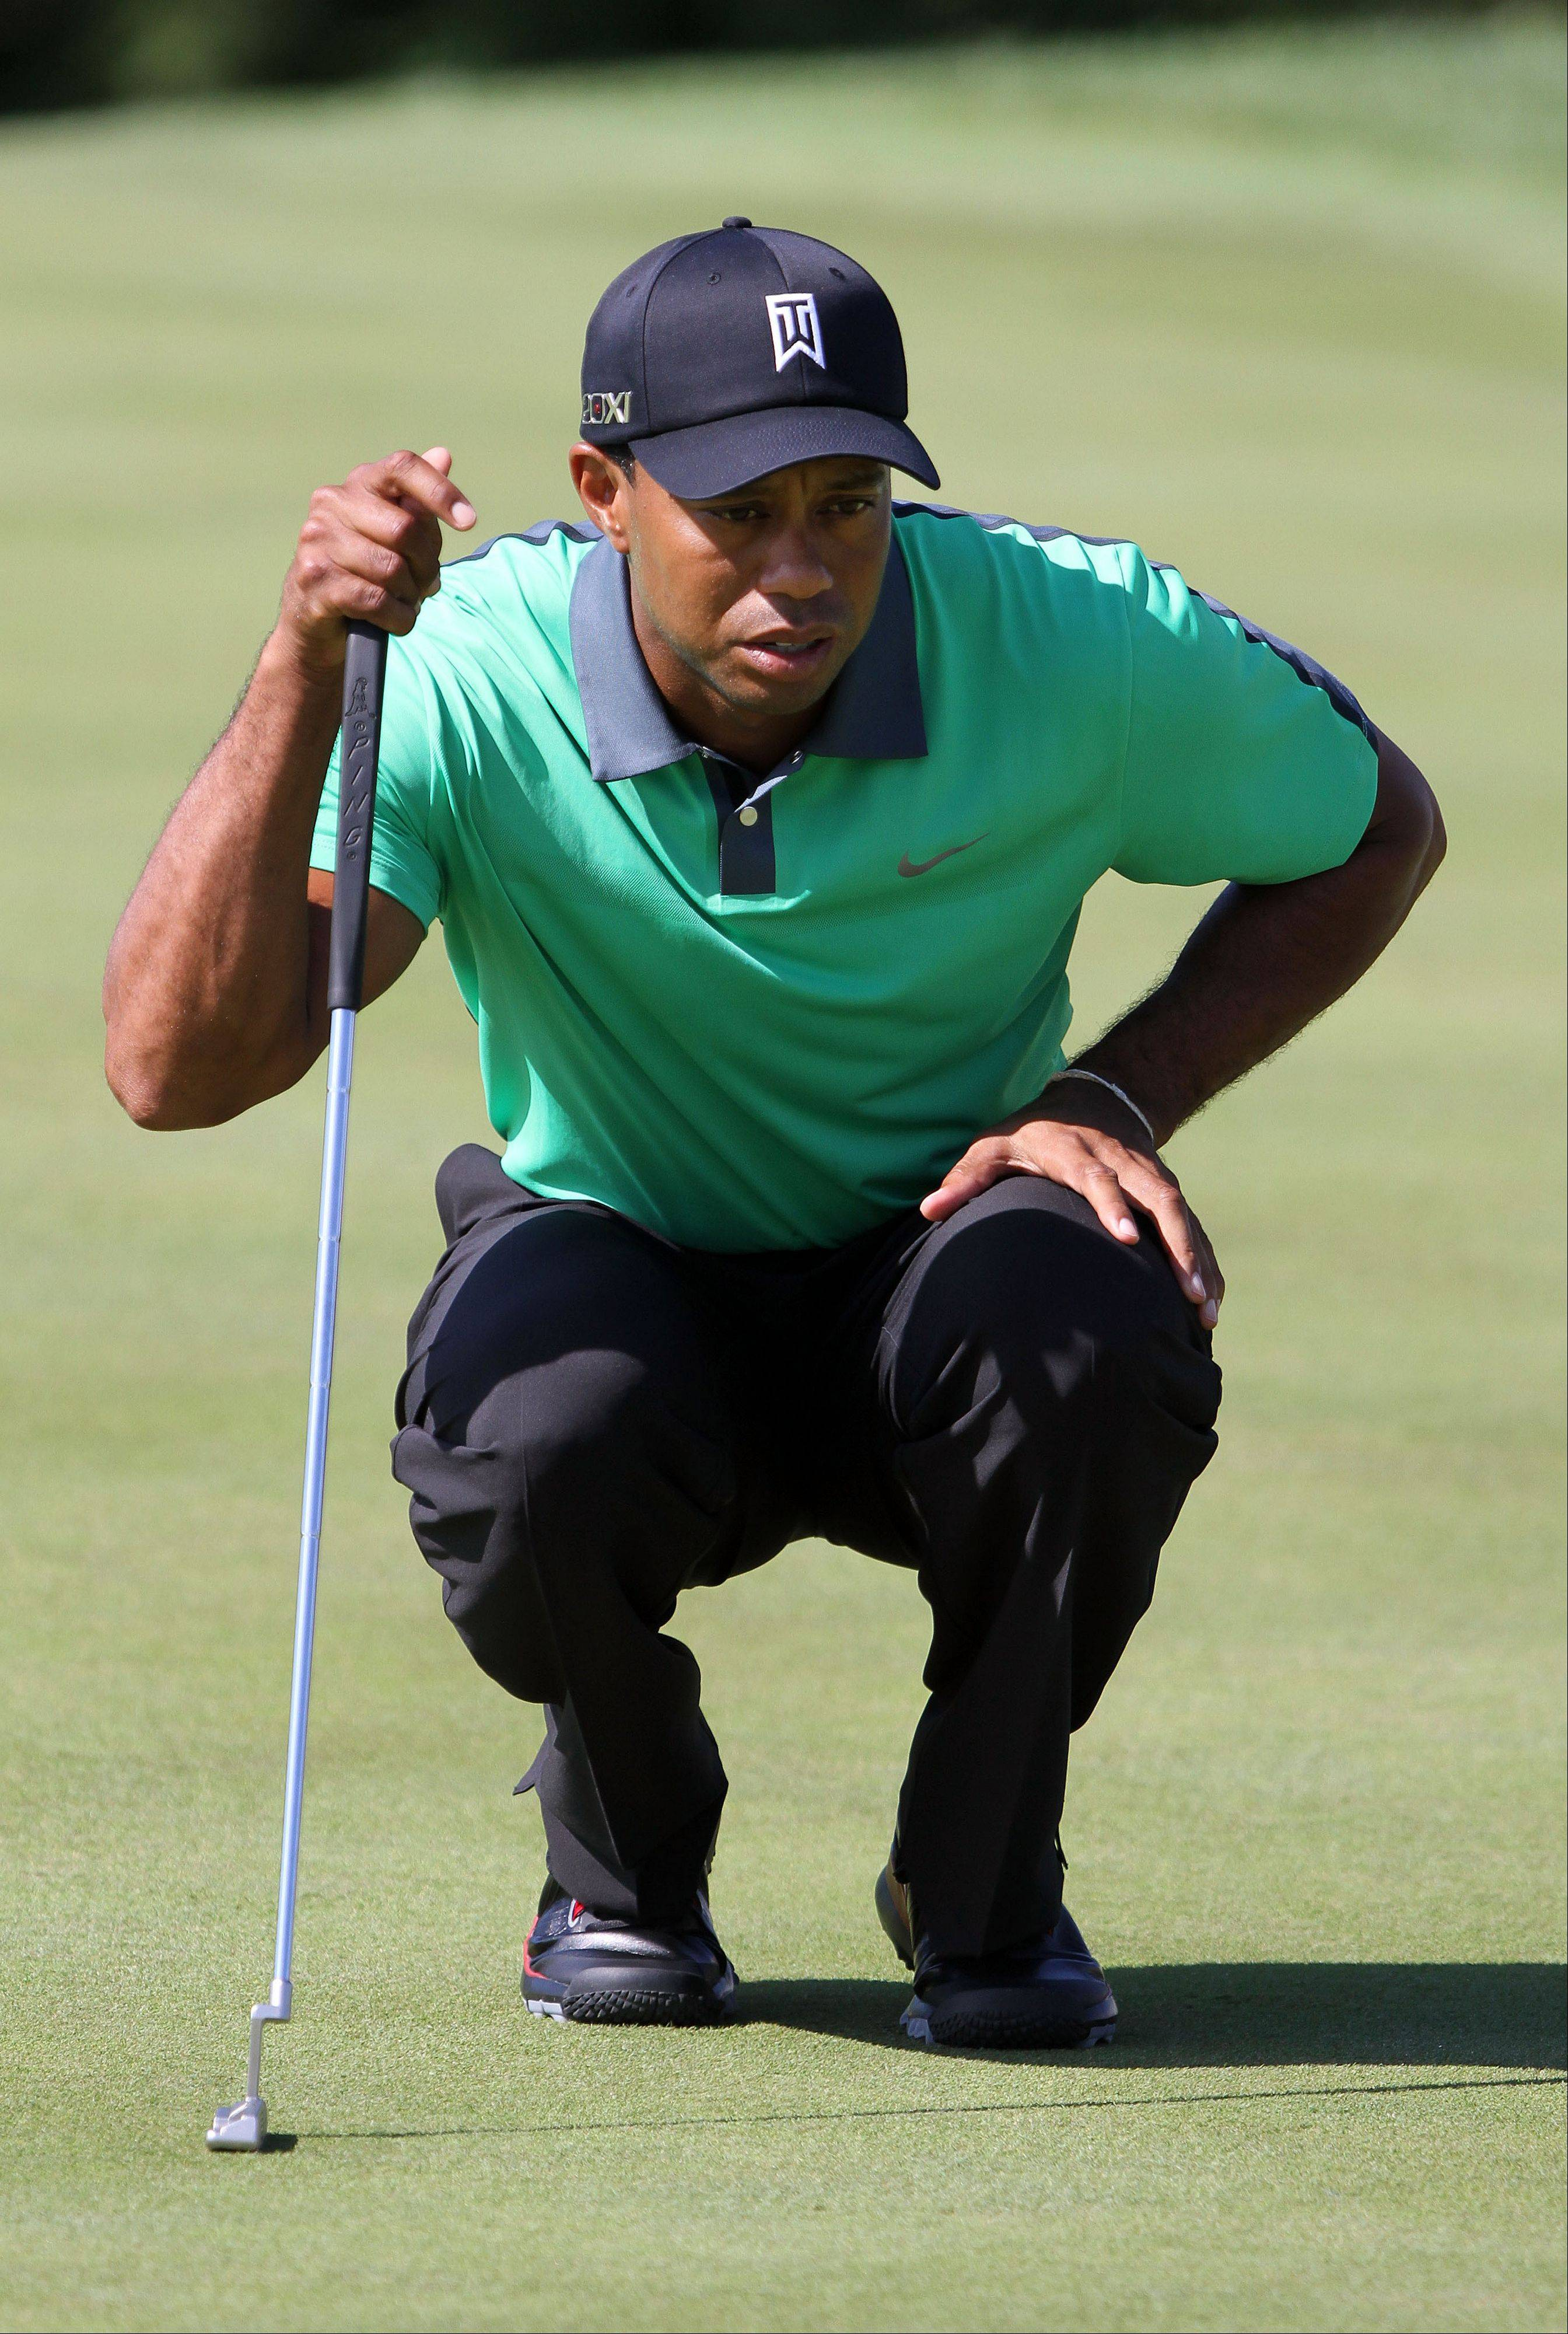 Tiger Woods shoot a 66 on Thursday butwas disappointed at missing three short putts during the first-round of the BMW Championship at Conway Farms Golf Club in Lake Forest.